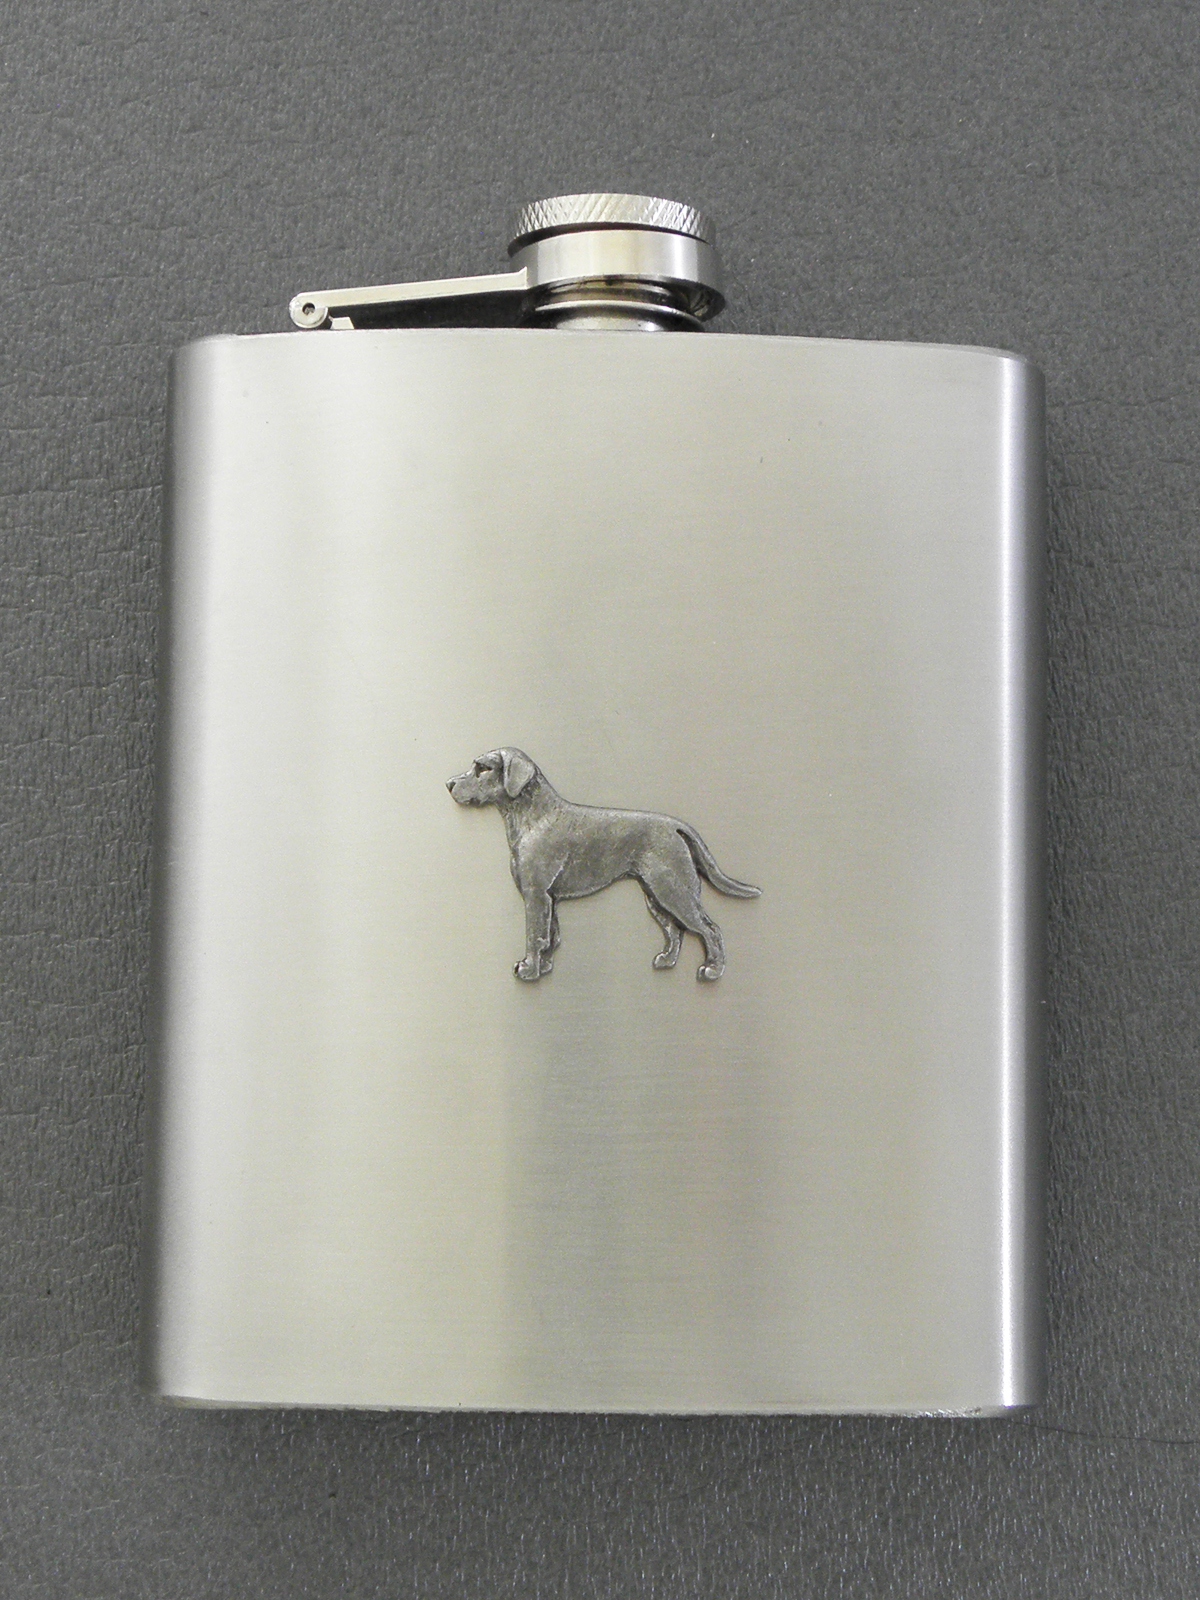 Finnish Hound - Hip Flask Figure